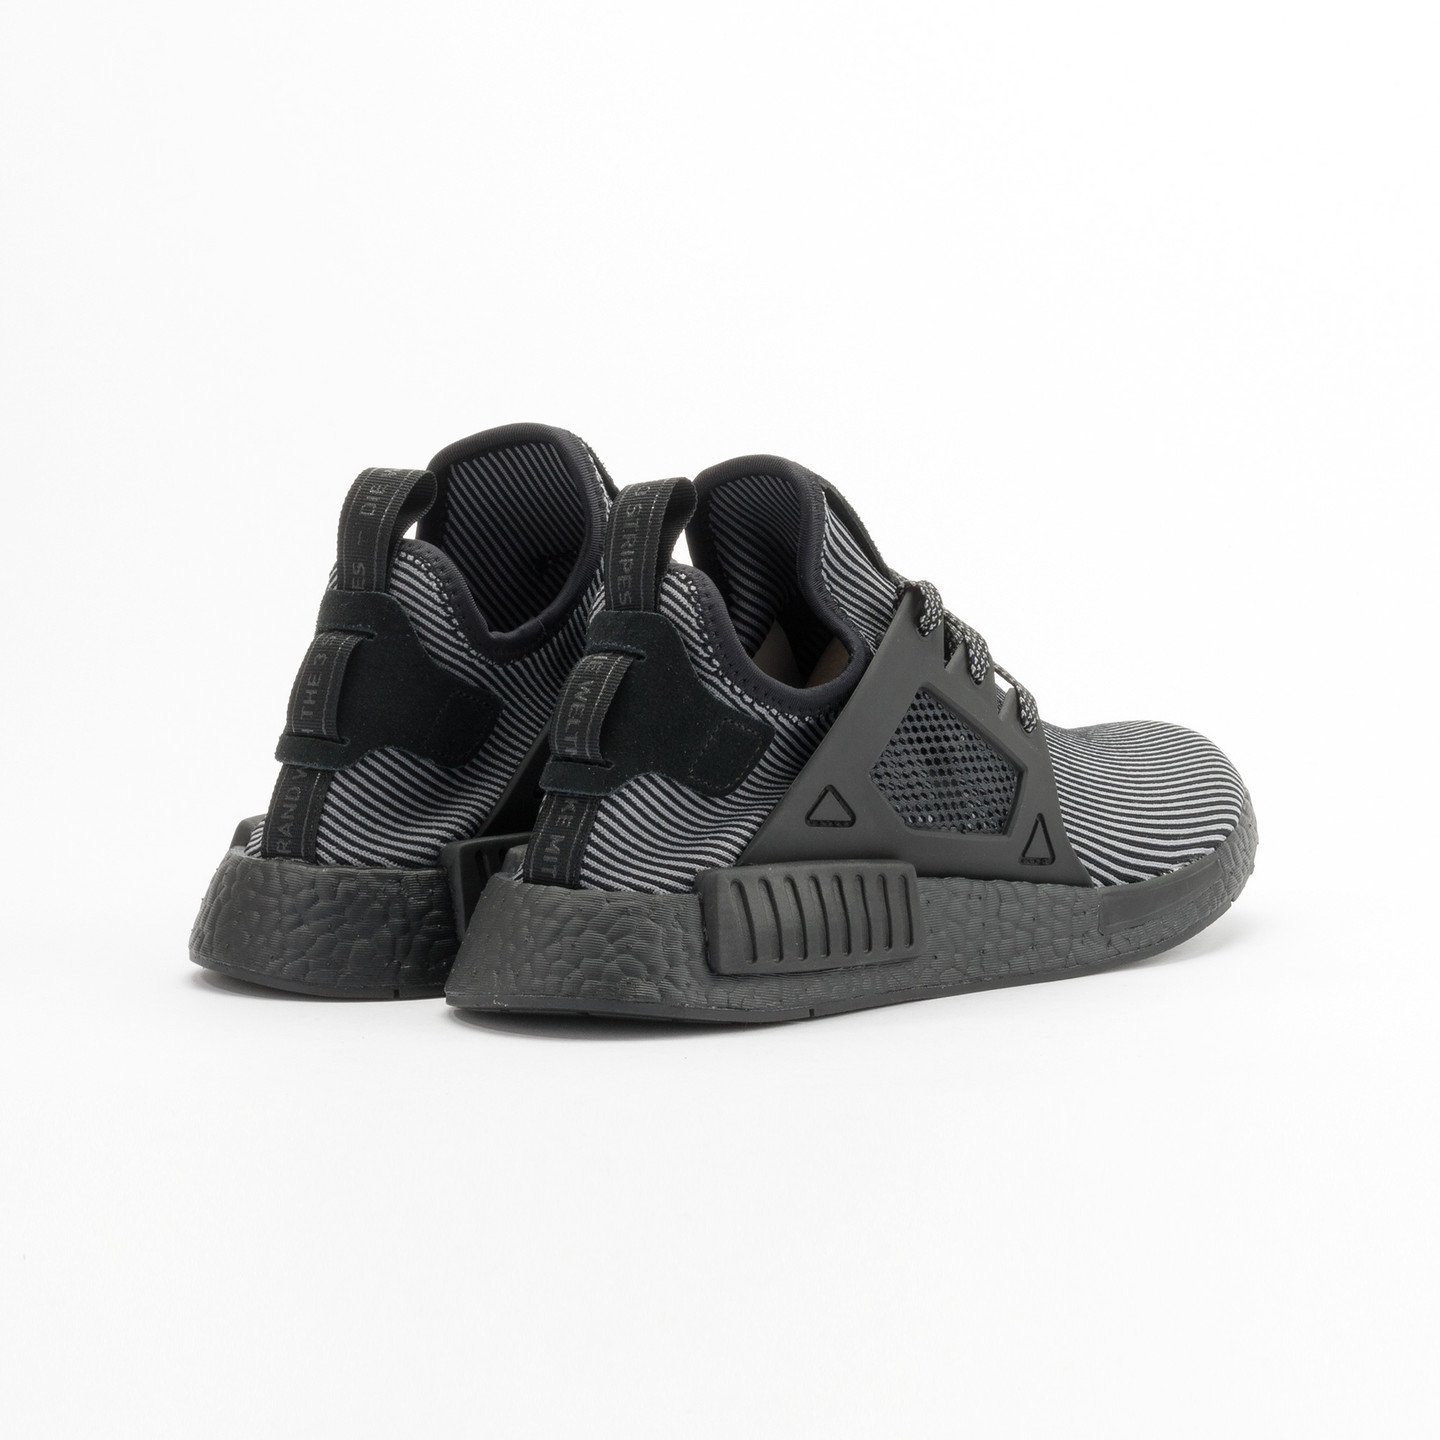 Adidas NMD XR1 Primeknit Core Black / Core Black / Running White S32211-48